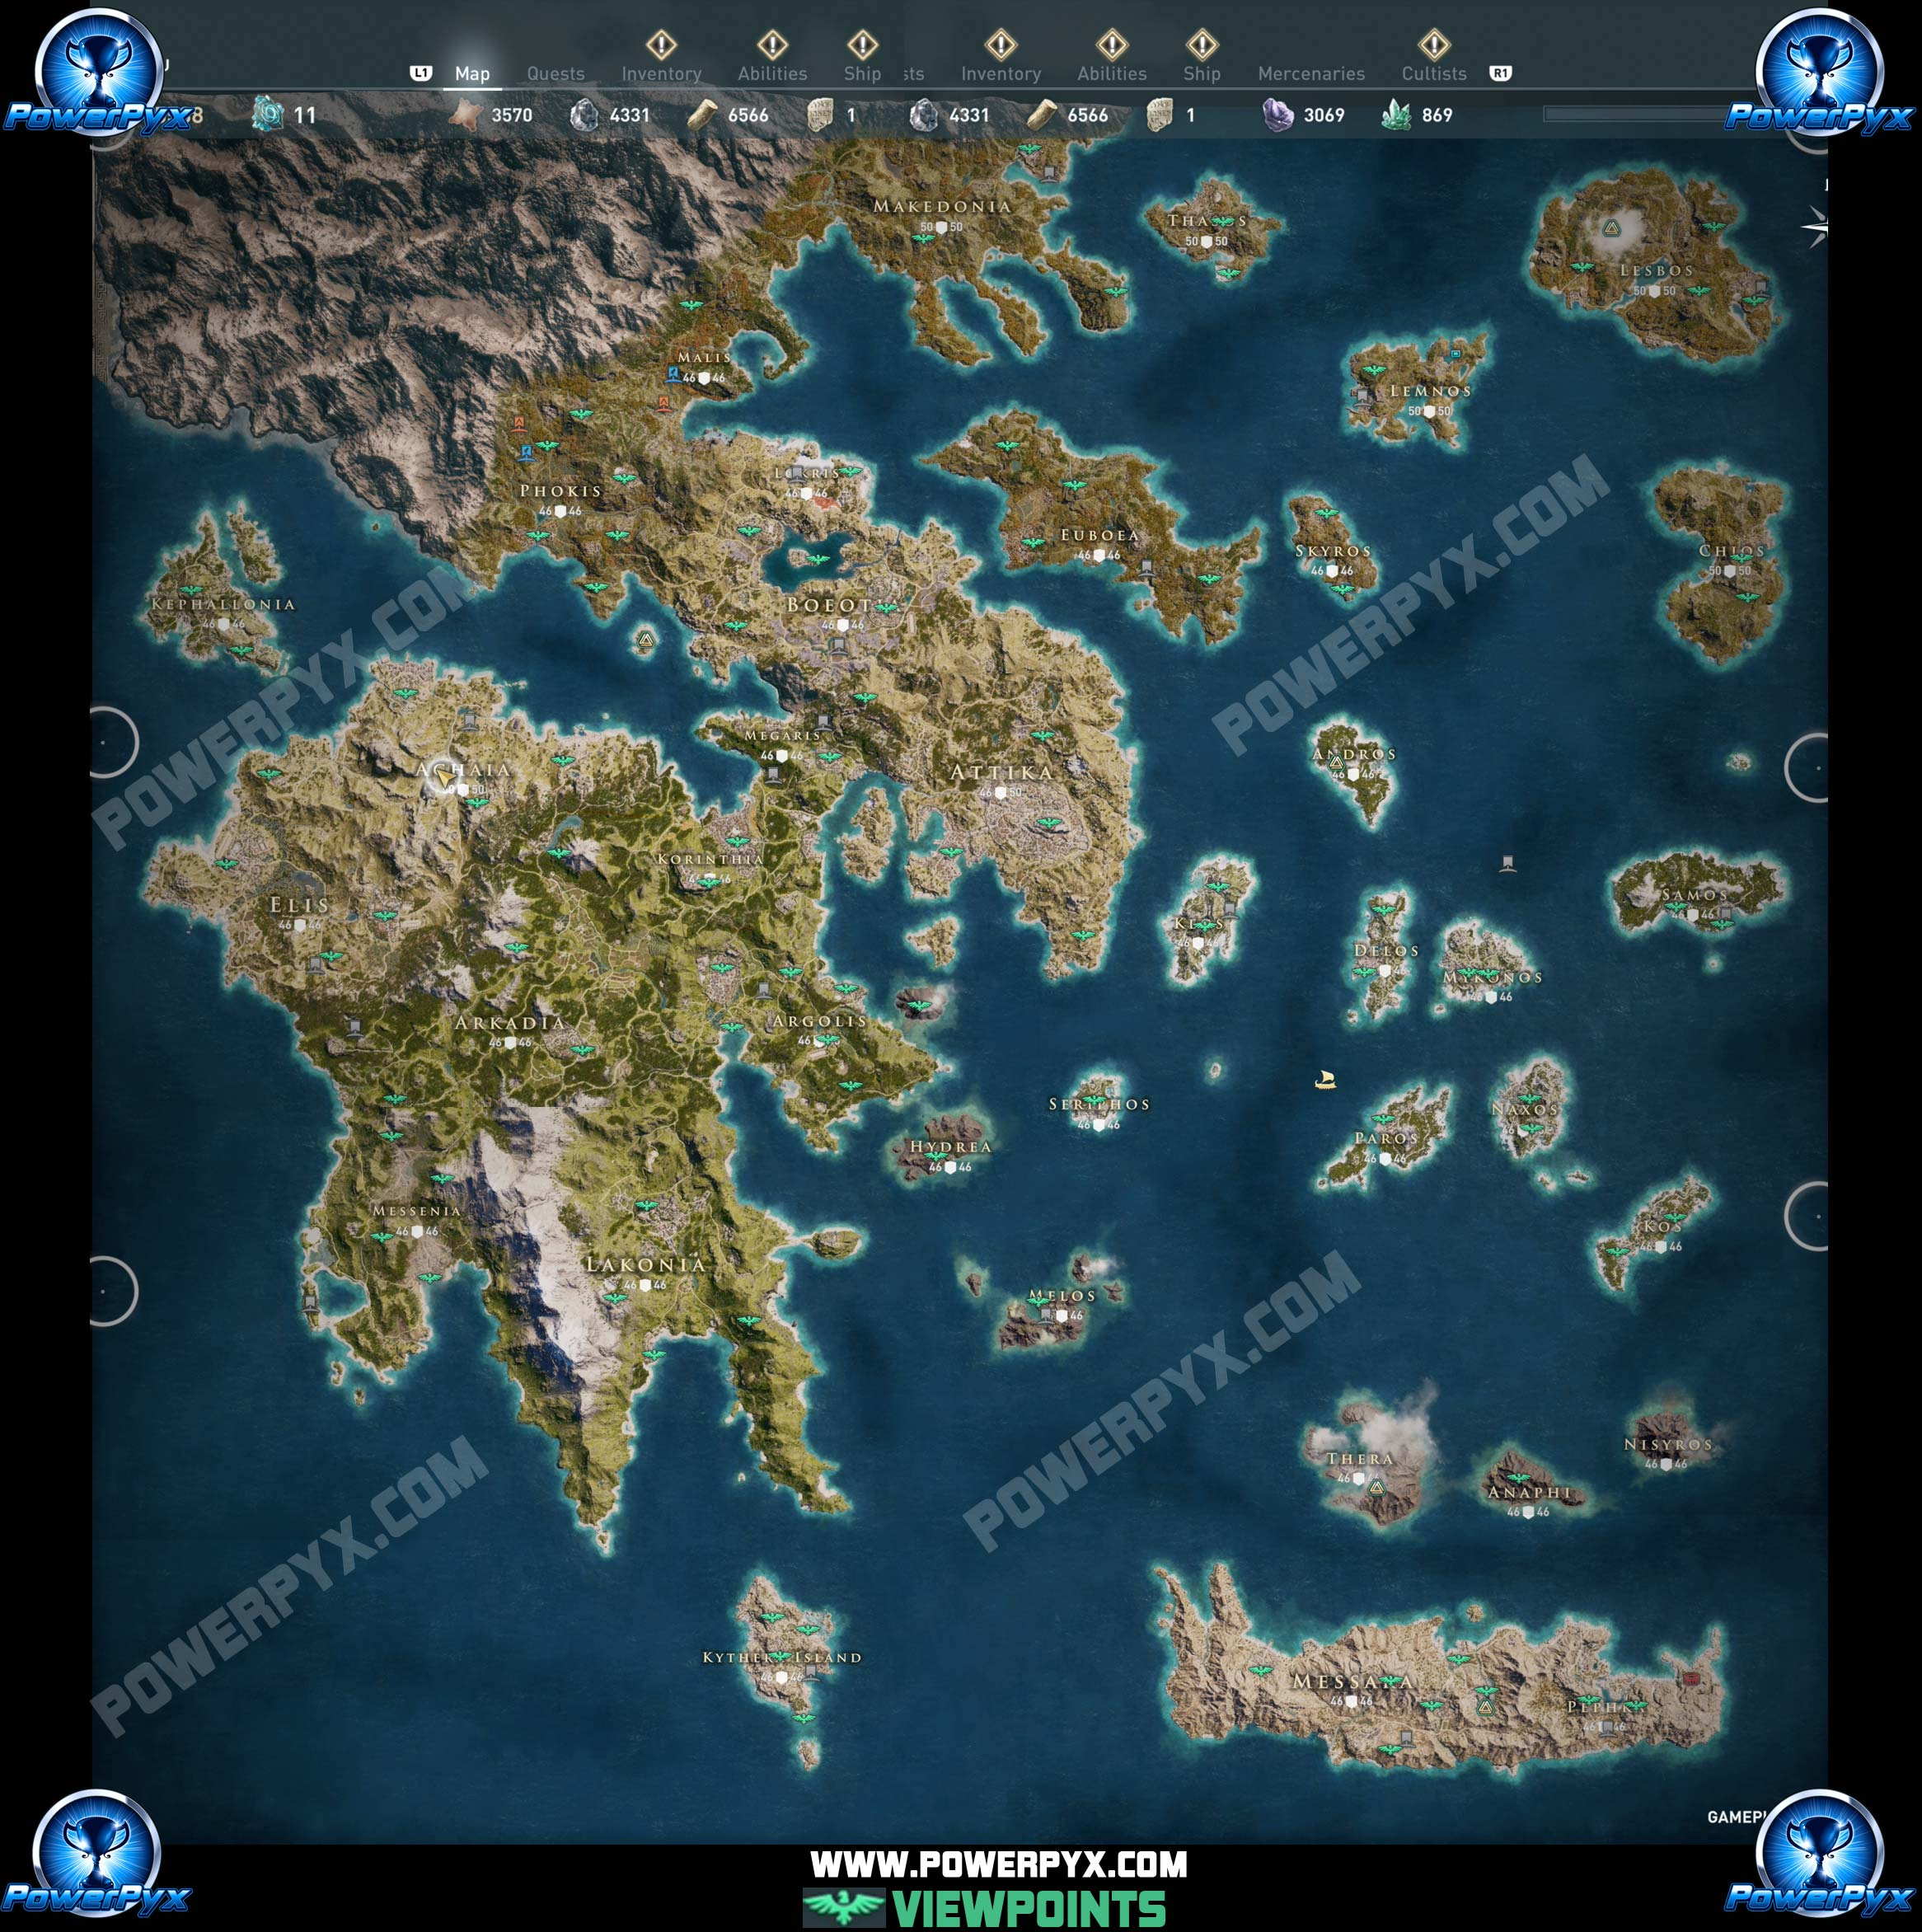 assassins creed odyssey karte Assassin's Creed Odyssey Viewpoint Locations Map